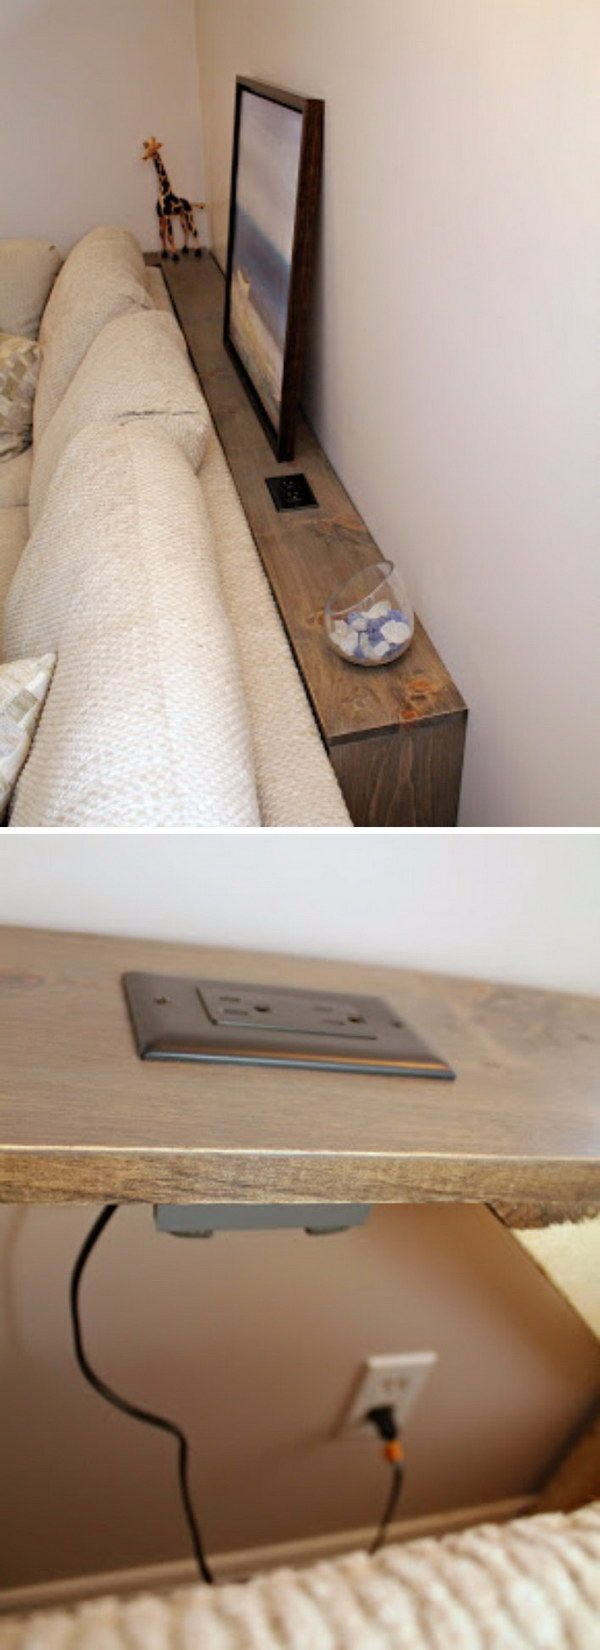 This DIY Sofa Table Behind Built In Outlets Allows You Plug In Your Electronics ..